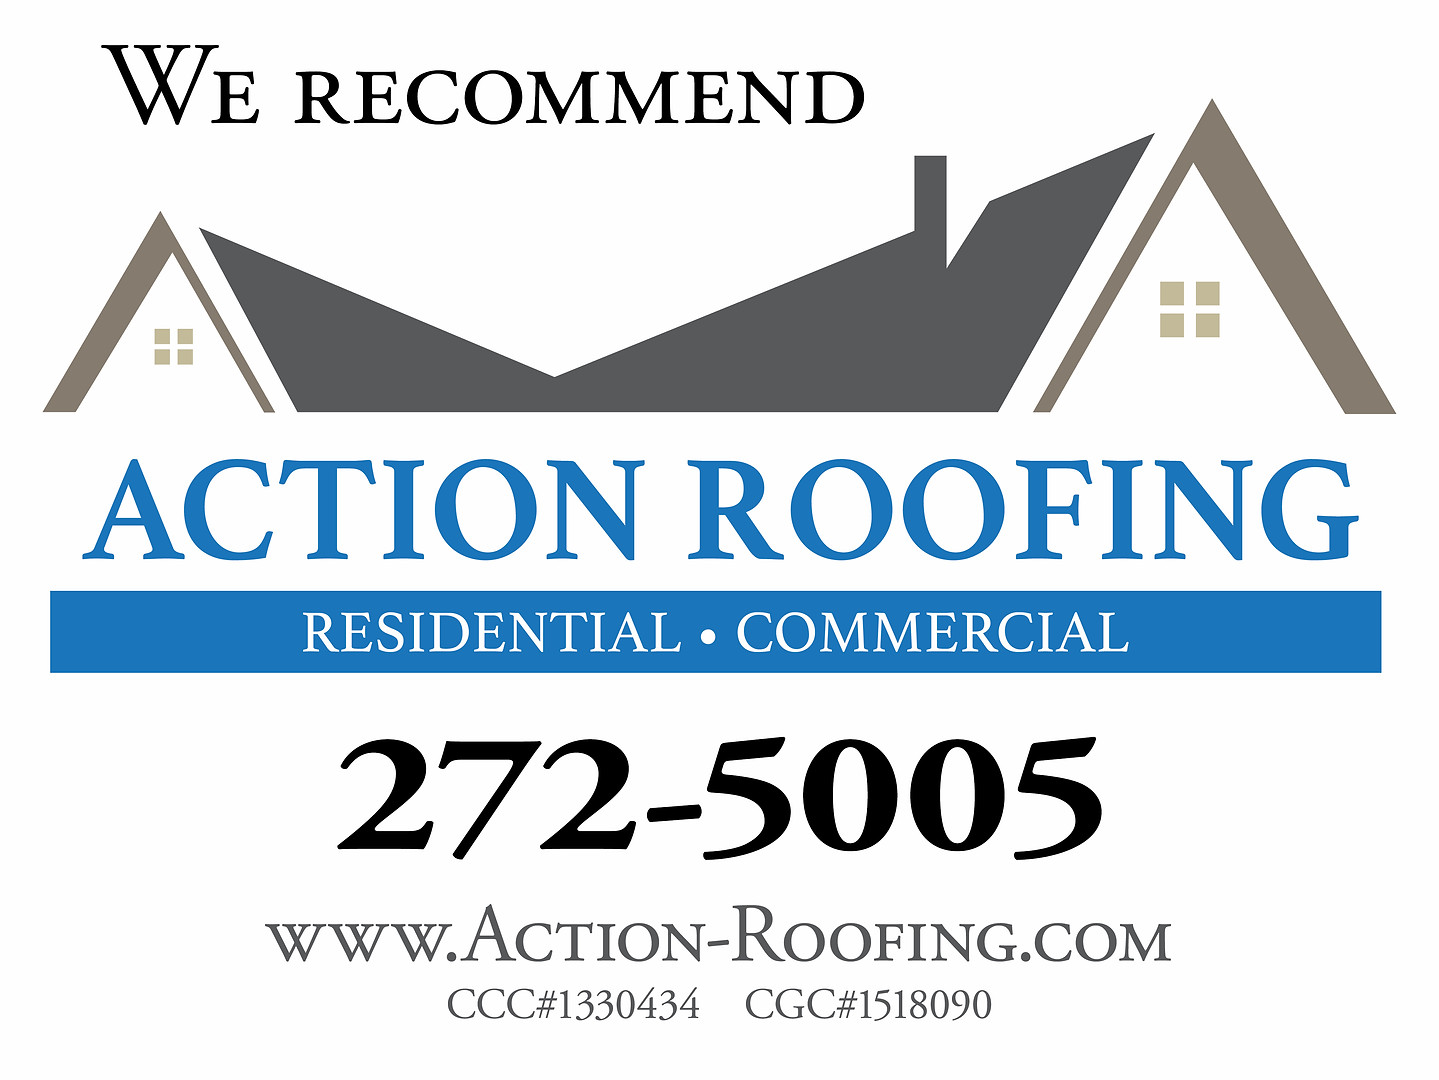 Action Roofing Yard Sign Approved.jpg